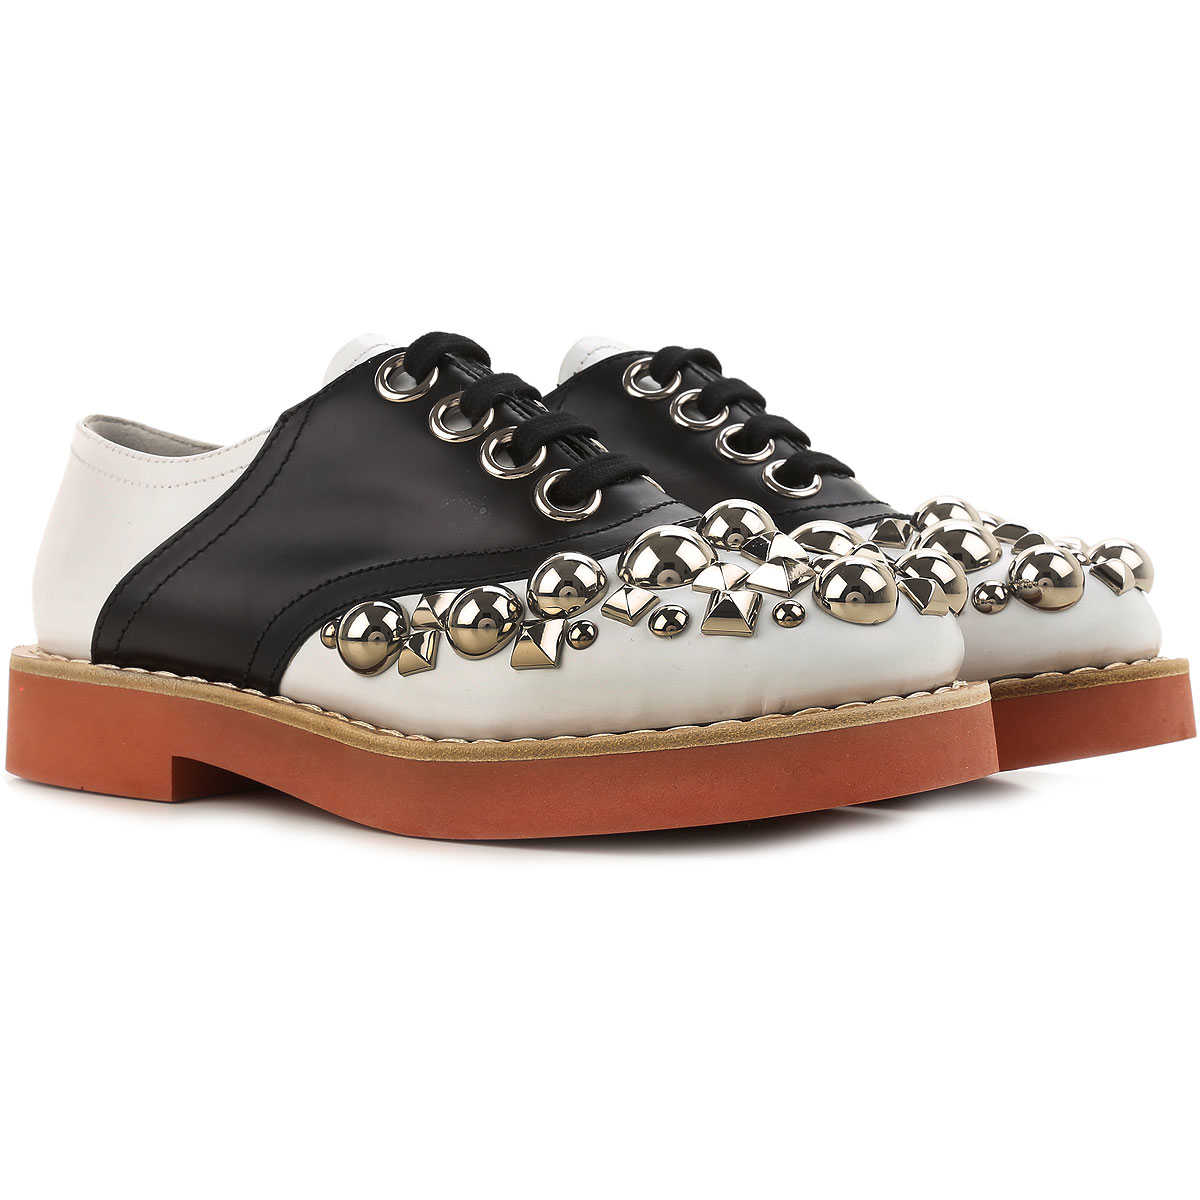 Miu Miu Brogues Oxford Shoes On Sale in Outlet